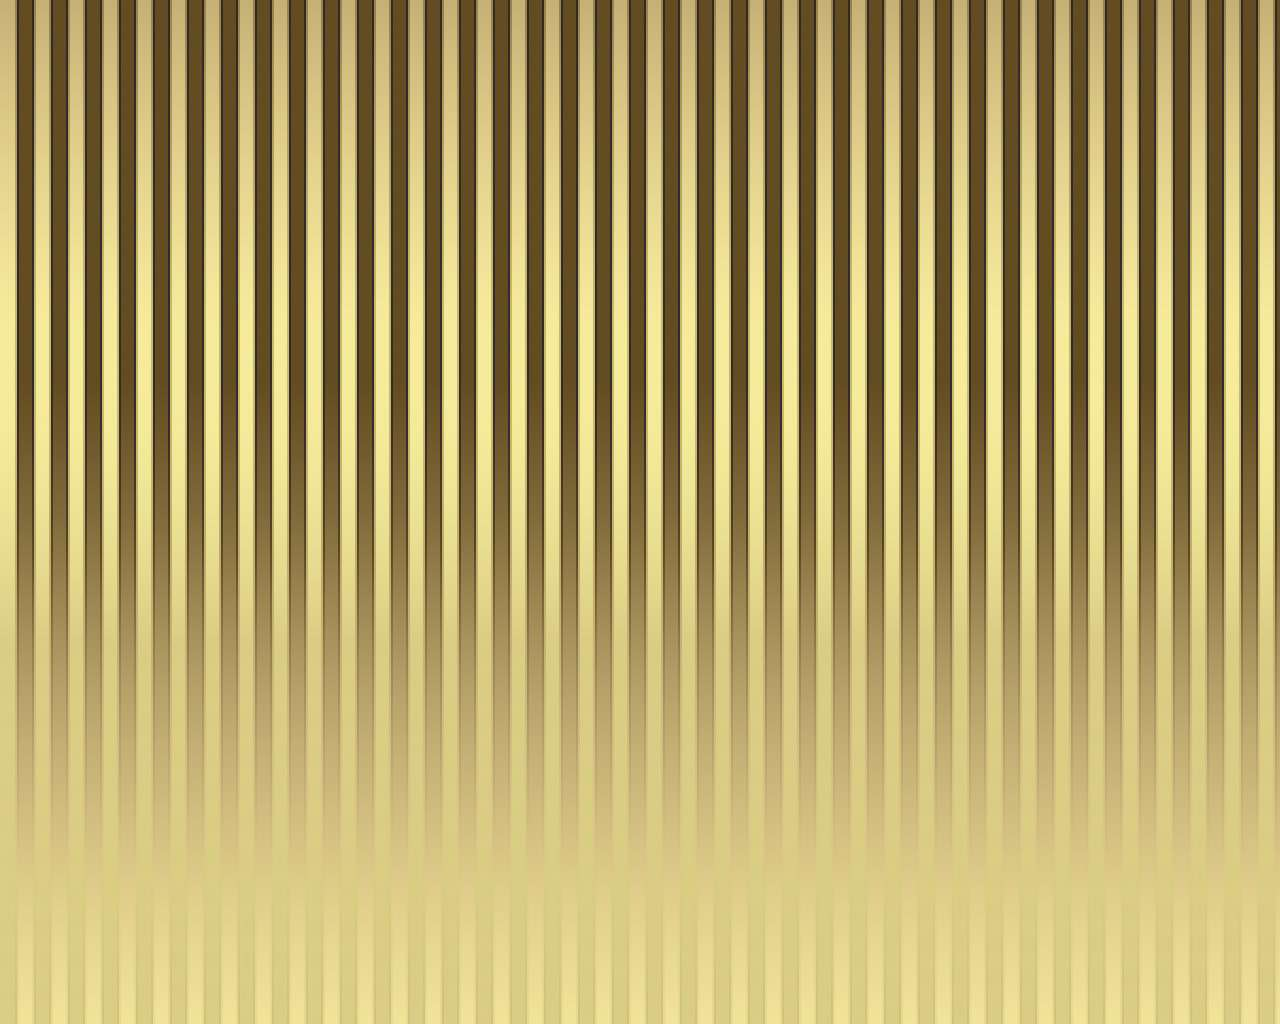 Design Stripe Gold